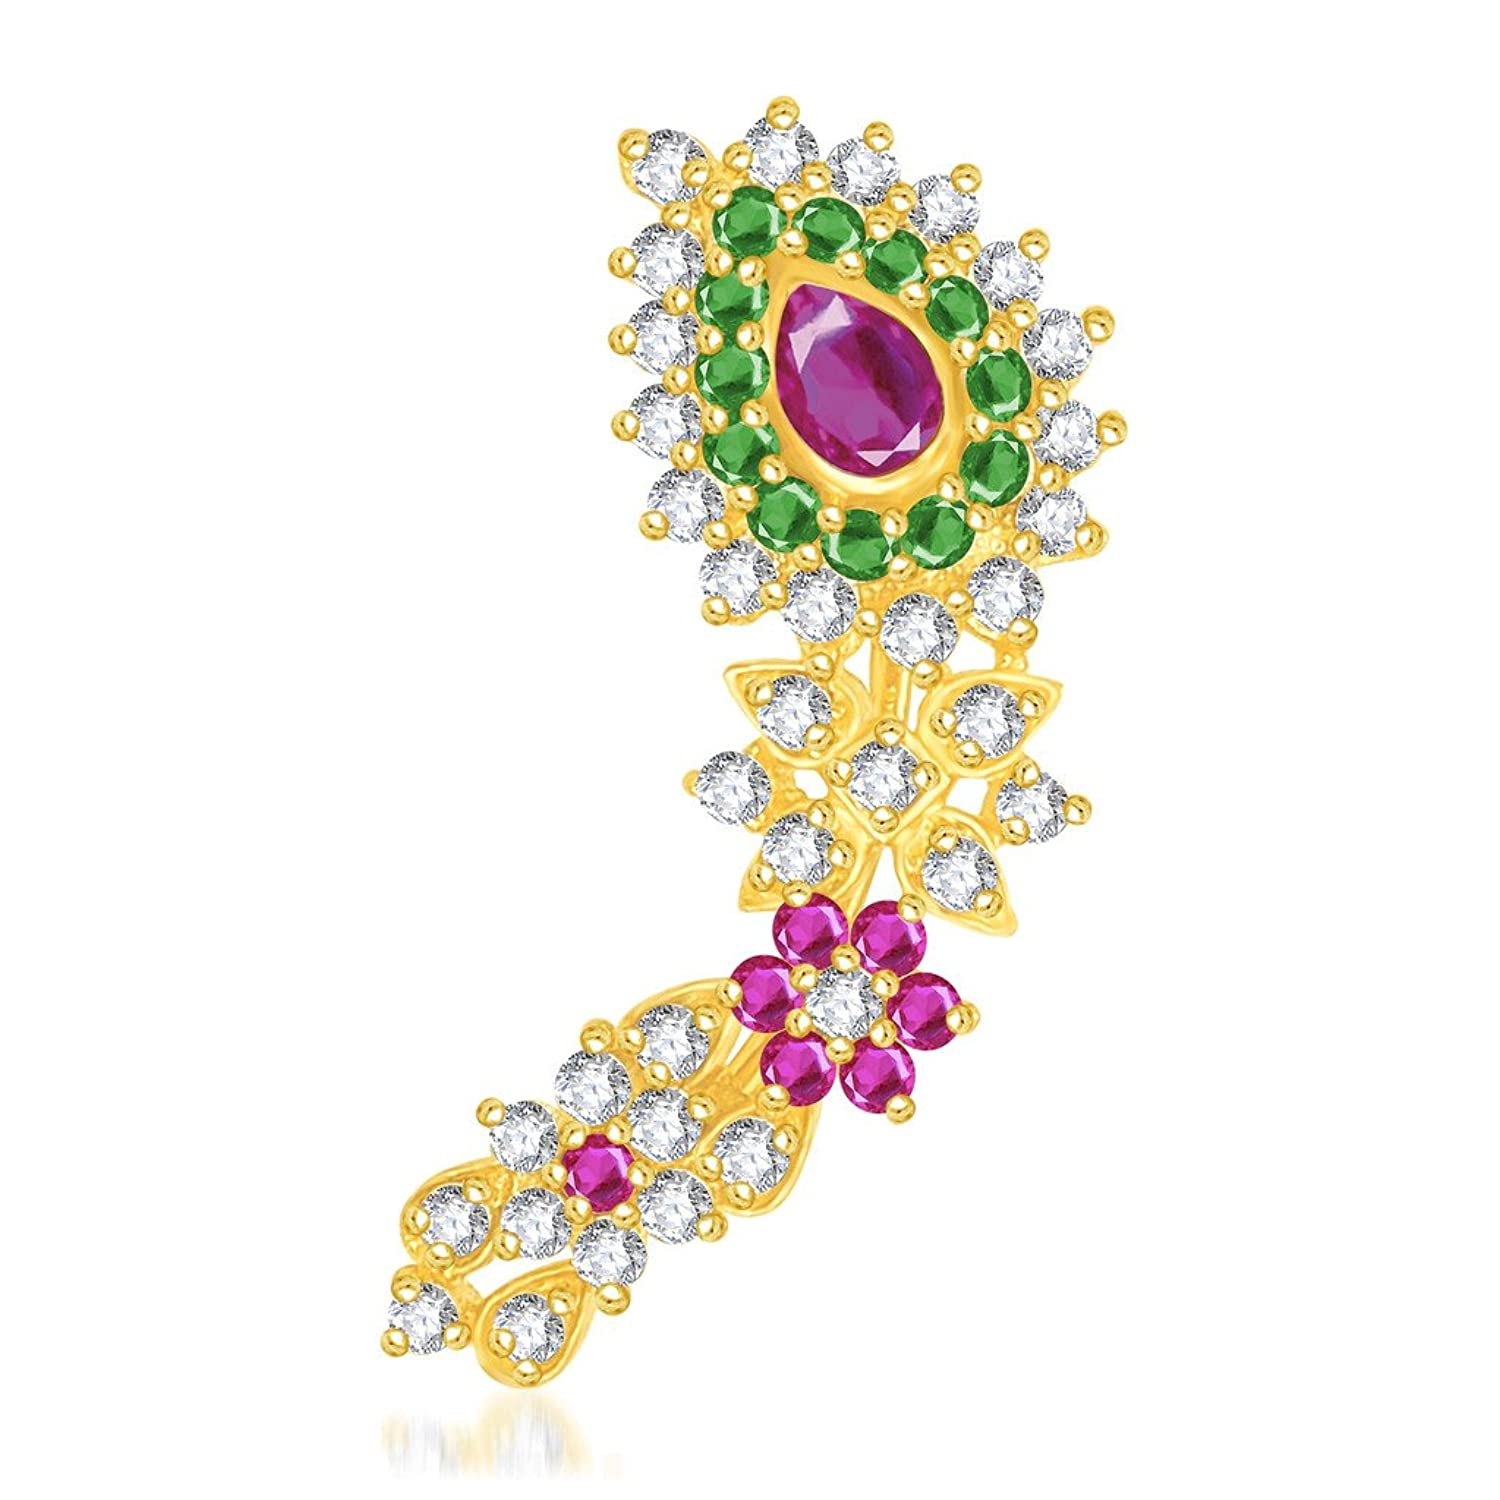 VK Jewels Traditional Gold Plated Maharashtrian Nose Ring made with Cubic Zirconia - NR1003G [VKNR1003G]